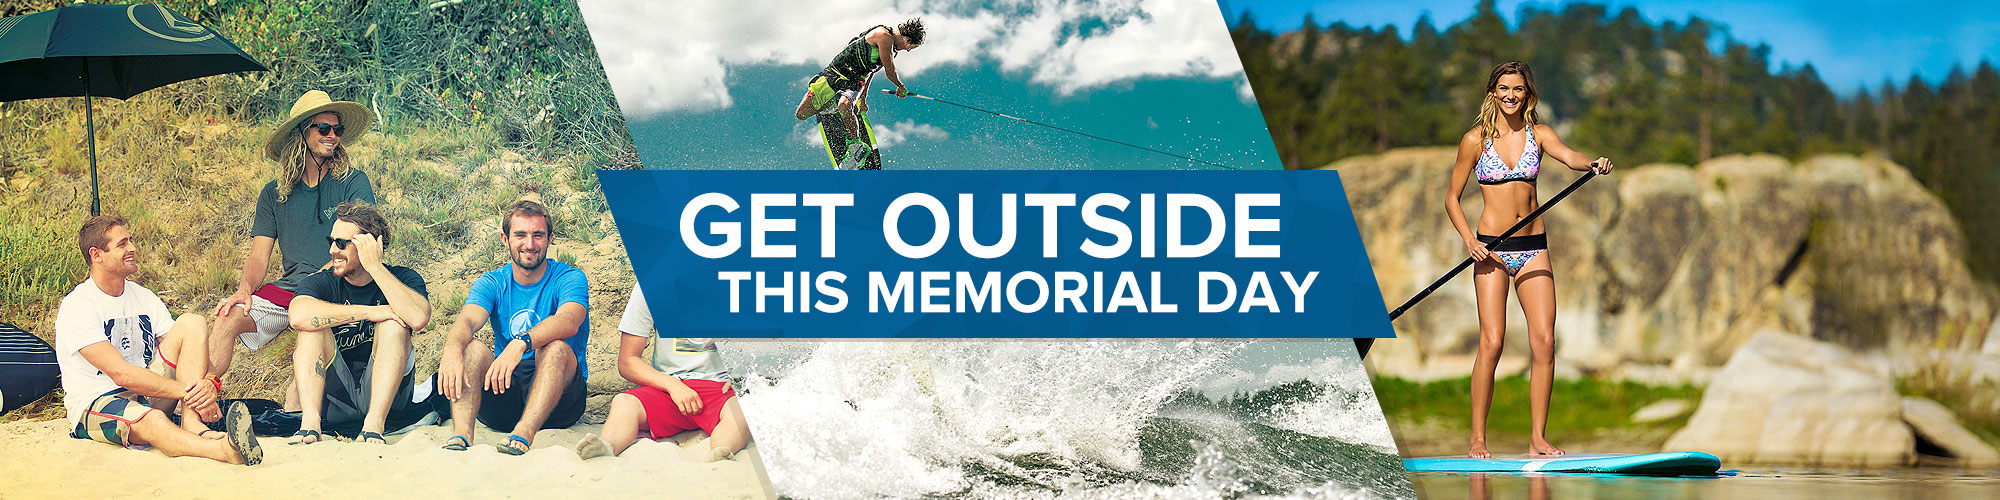 Get Outside This Memorial Day with Some New Gear from Sun & Ski.